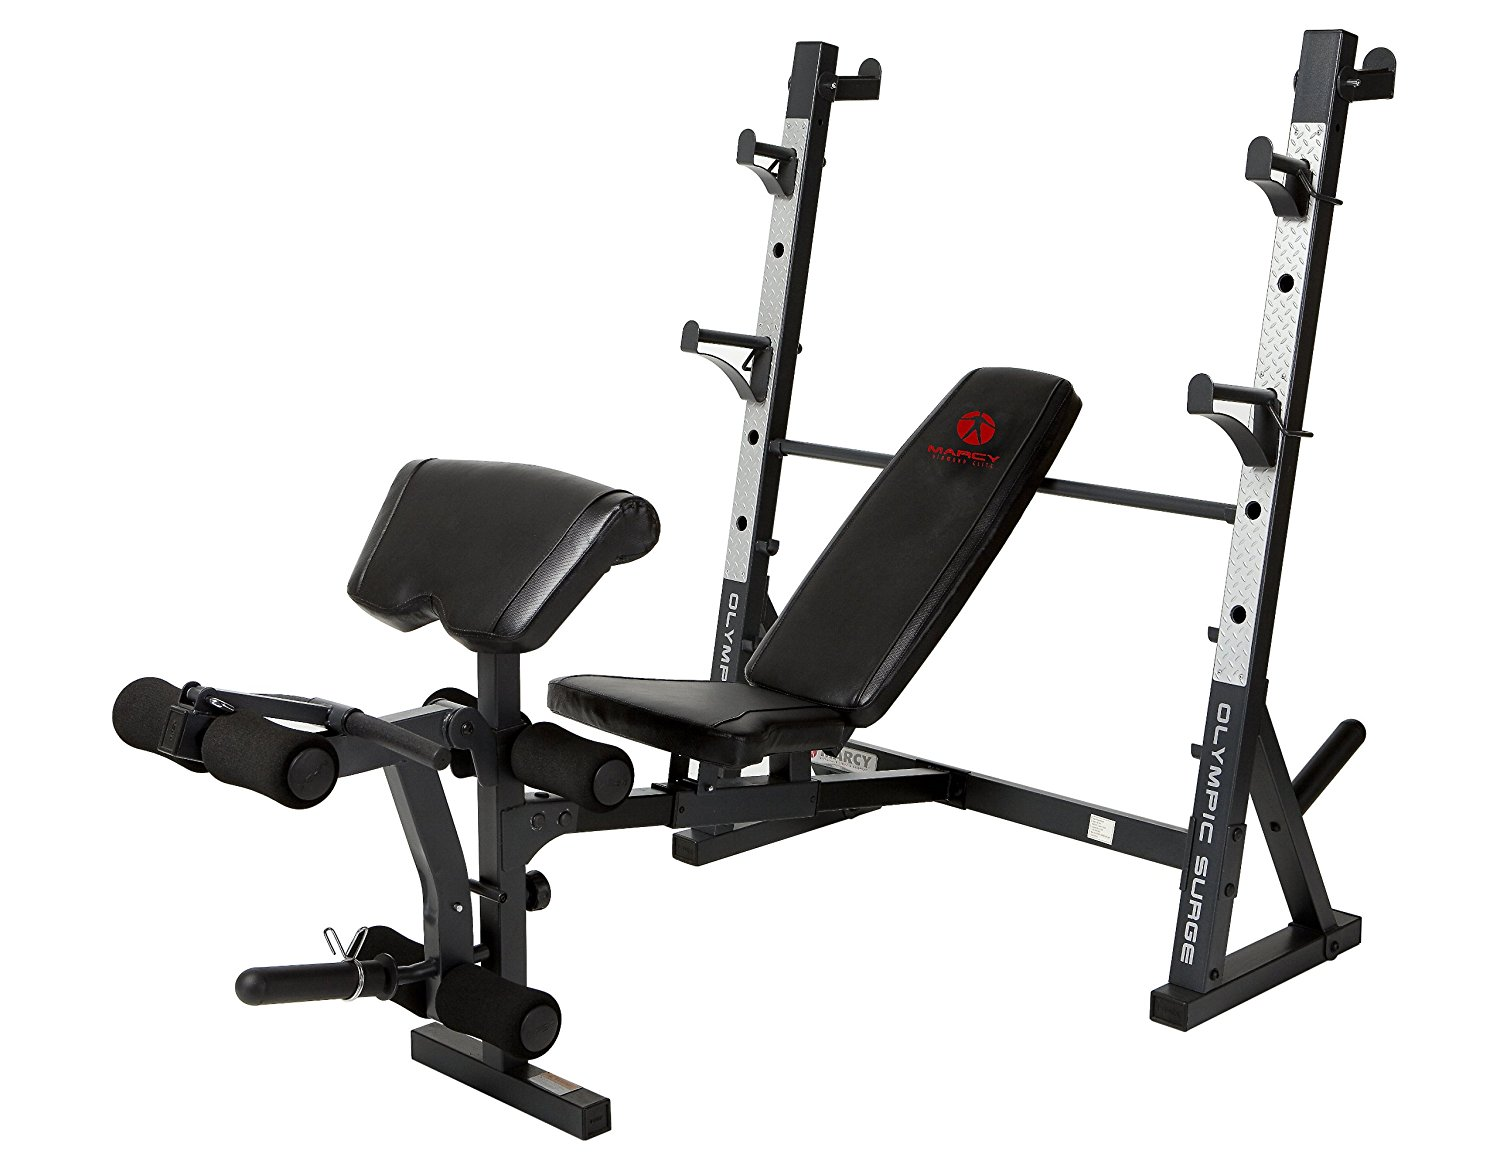 Marcy Olympic Weight Bench for Full-Body Workout MD-857 Amazon